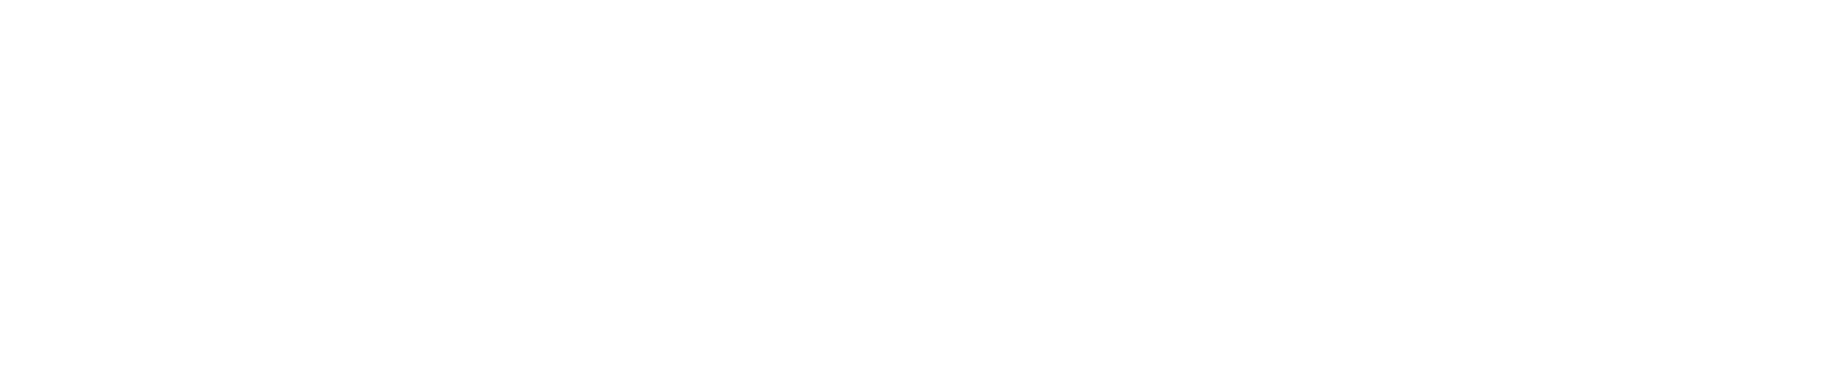 CampusGroups Users Community